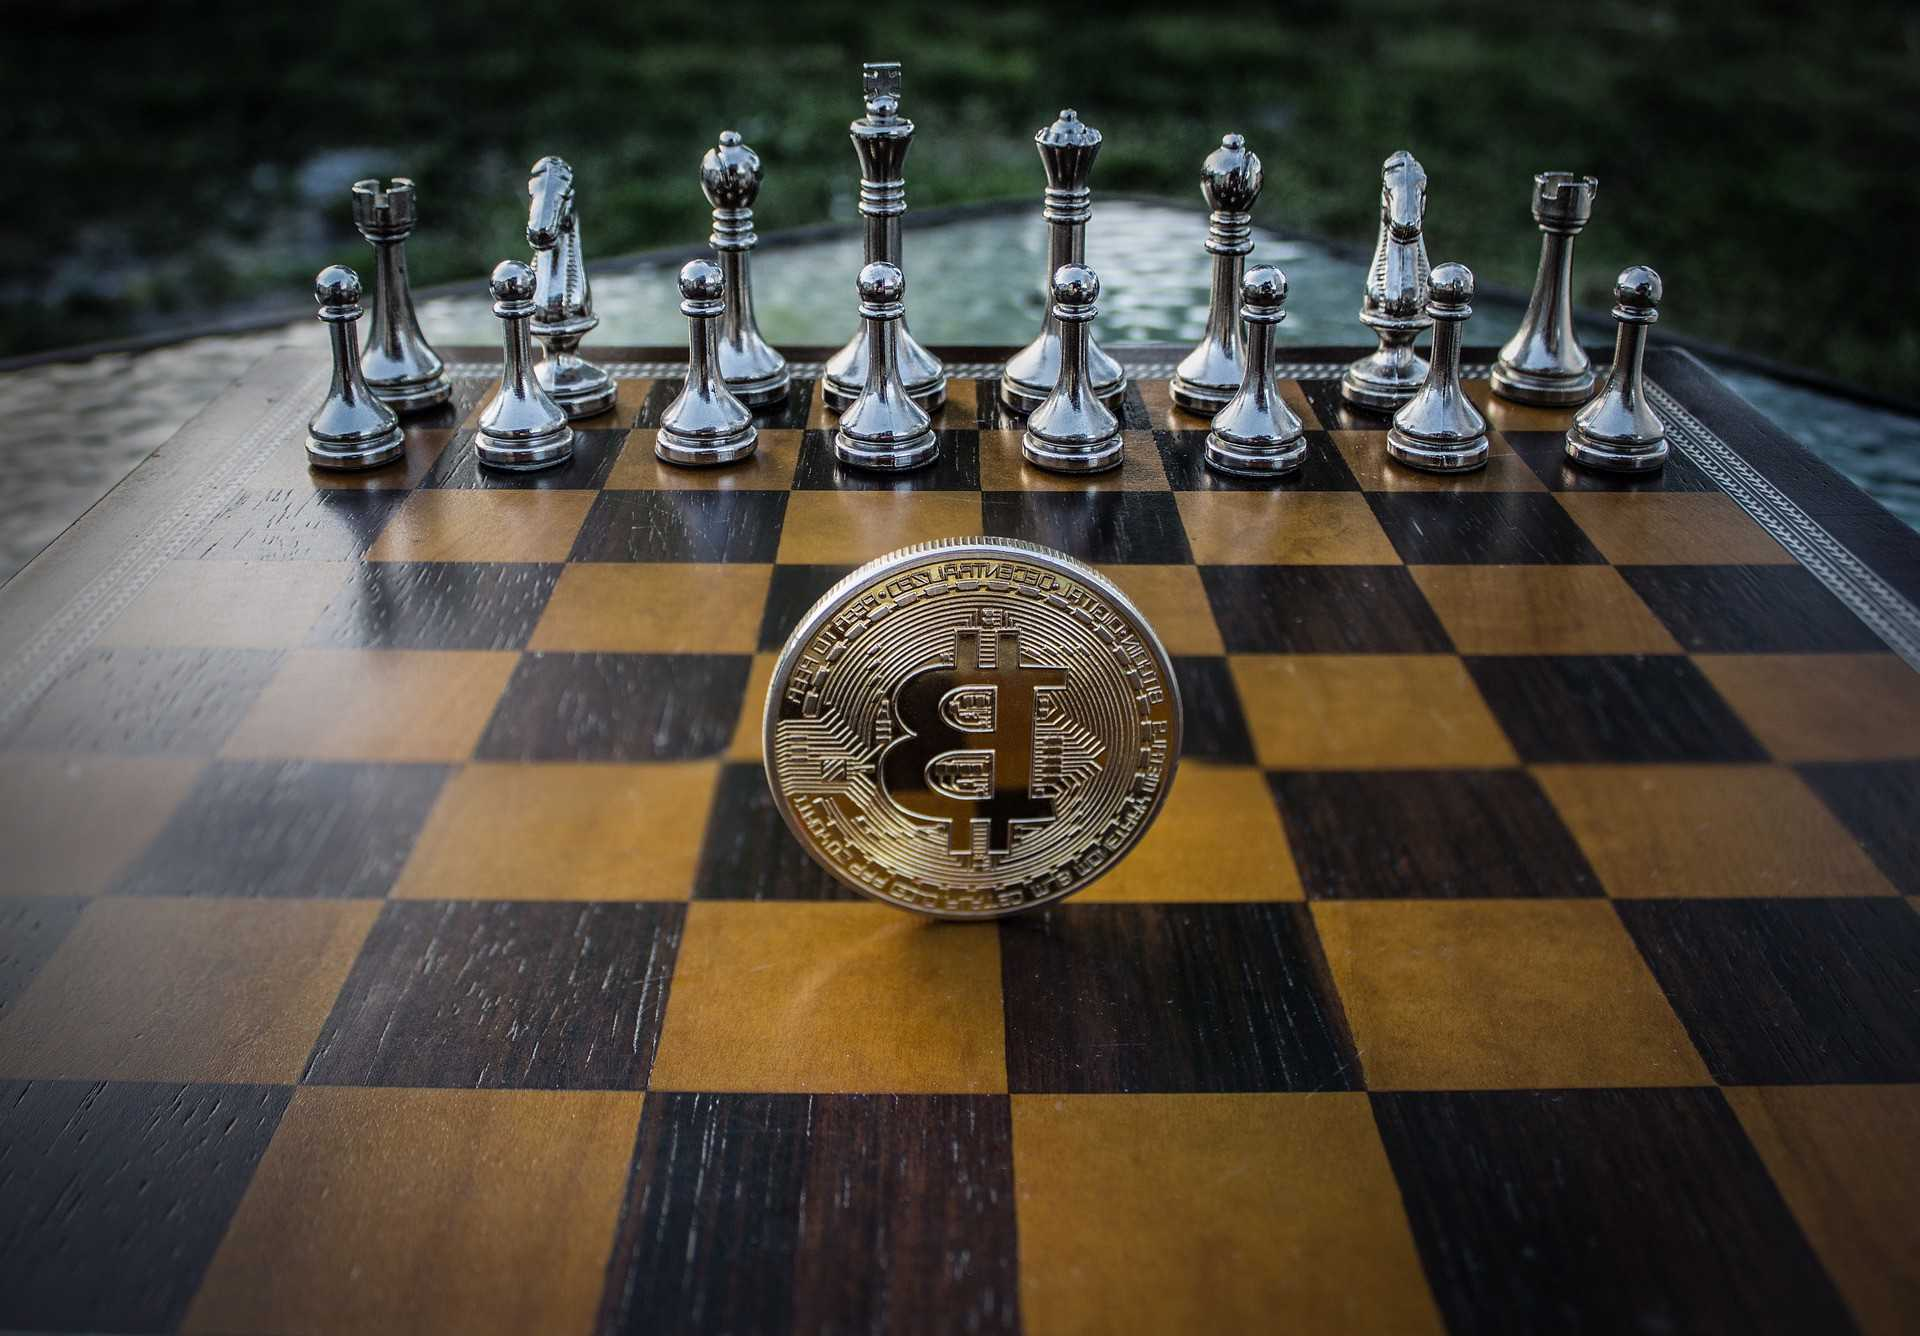 Cryptocurrencies can make a difference in Zimbabwe